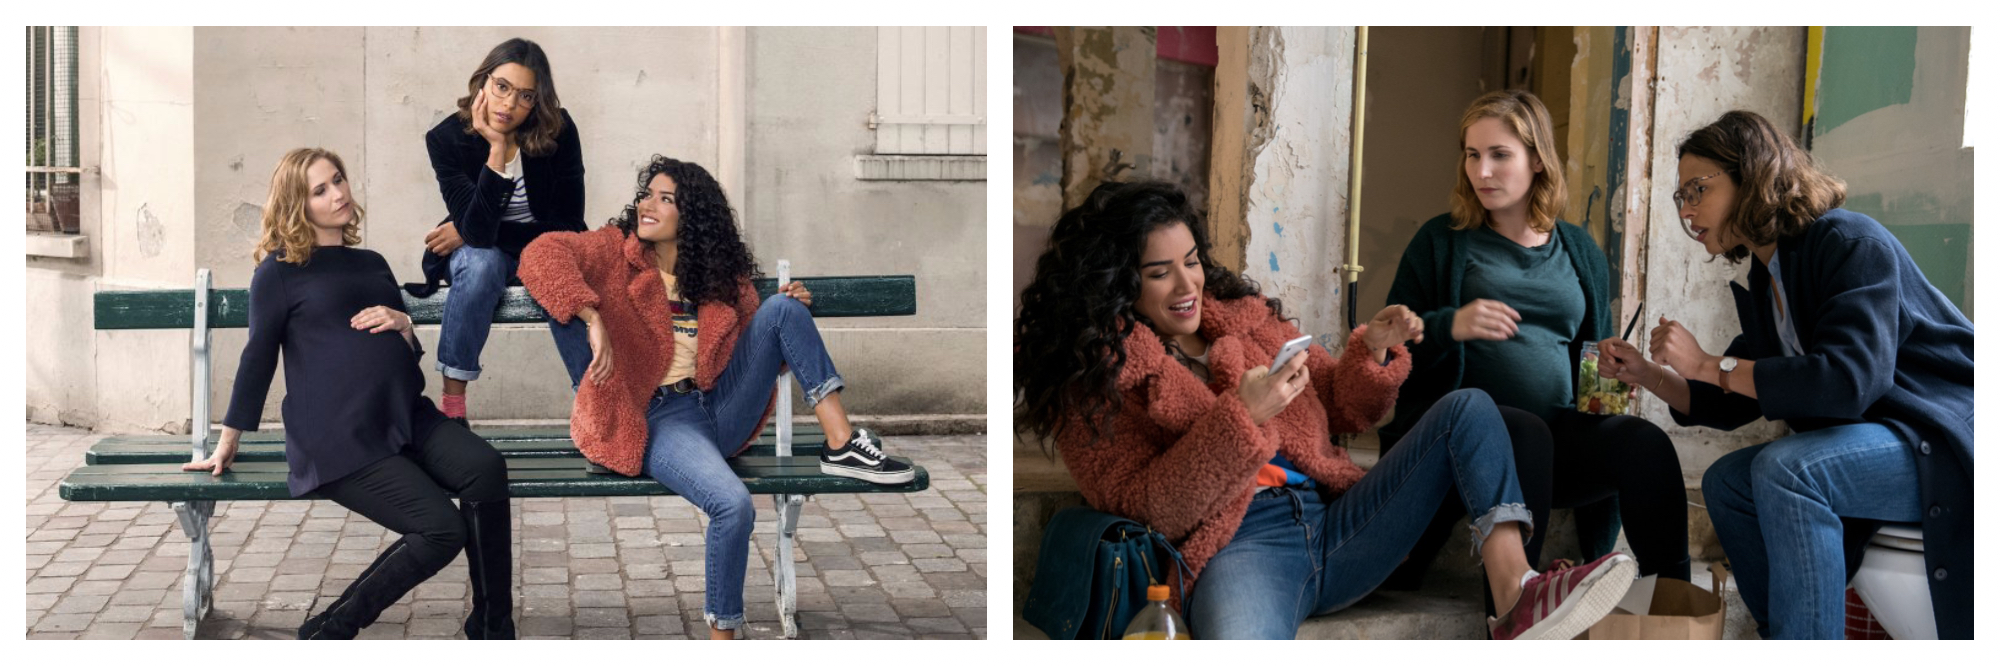 Left, three main characters from French Netflox series The Hook Up Plan, sitting on a bench in Paris. Right, the three main characters talking about a text message one of them has just received.